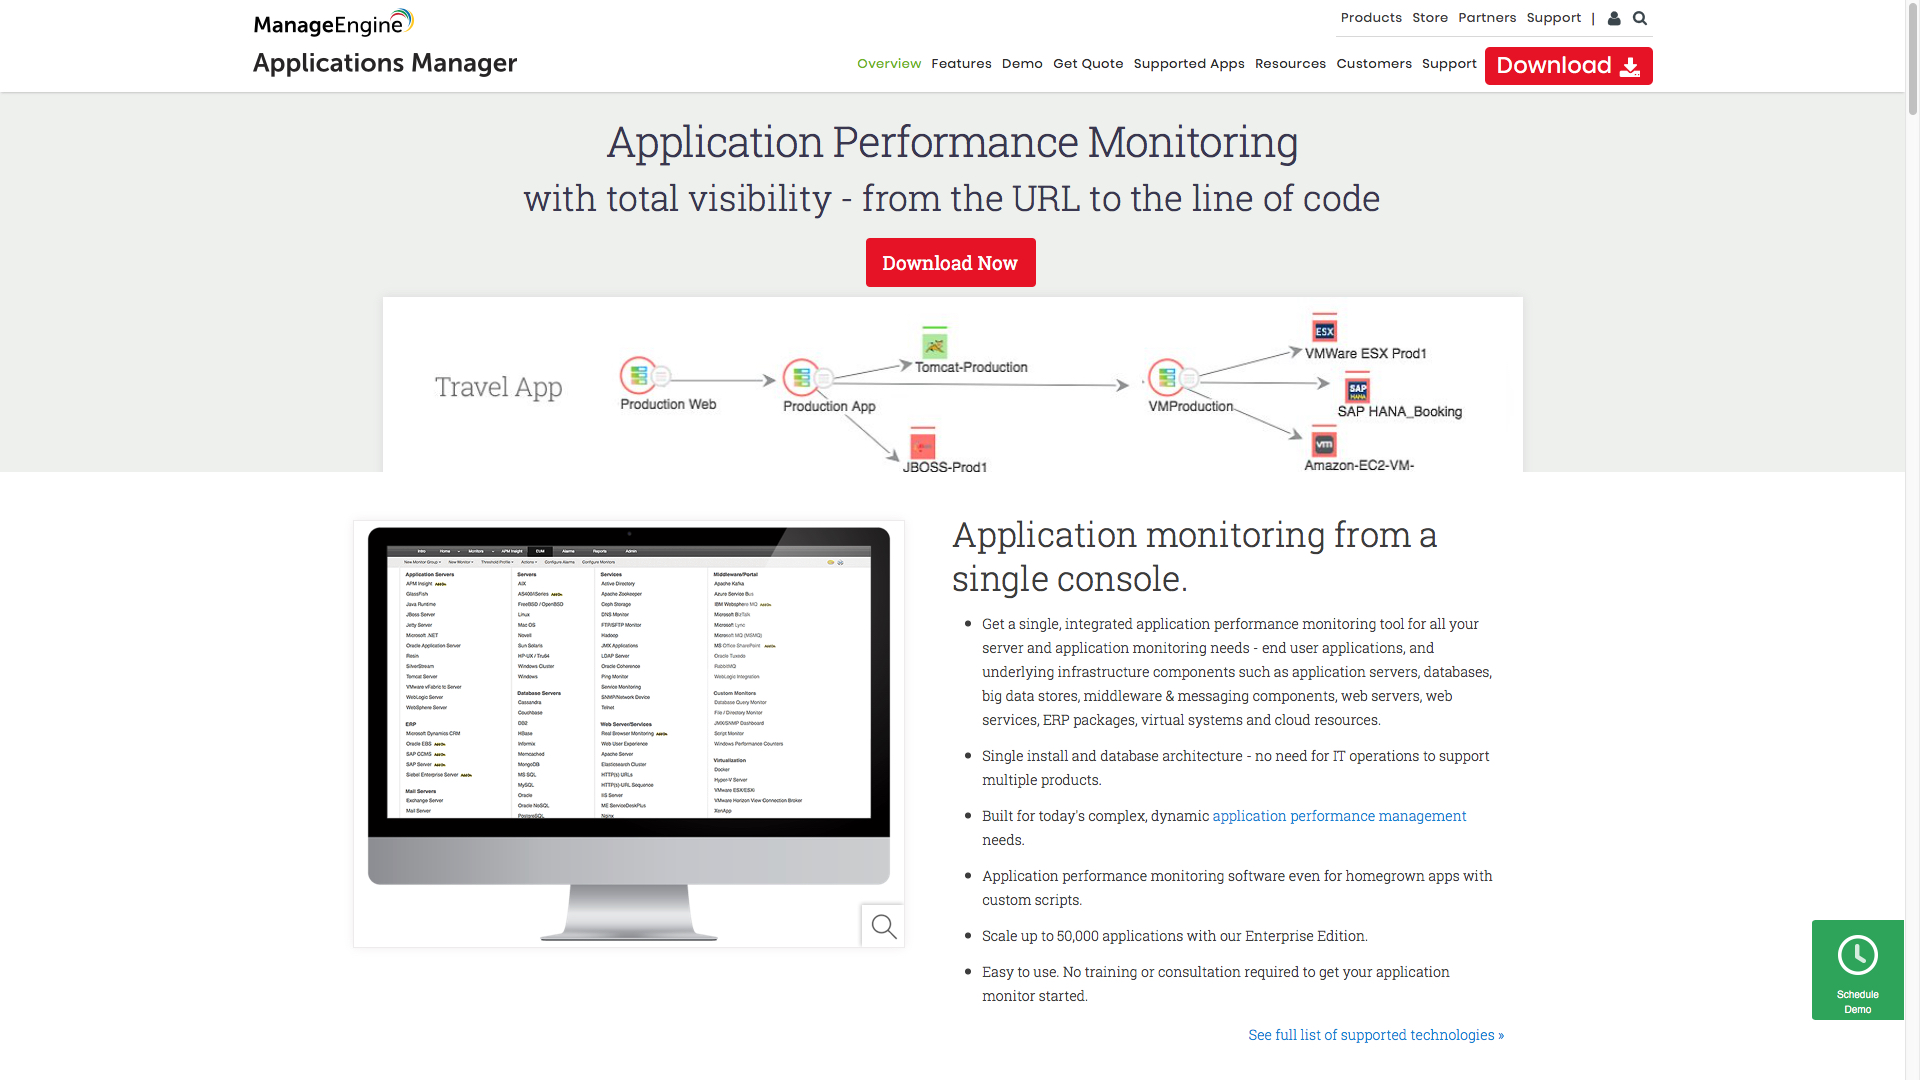 ManageEngine Applications Manager